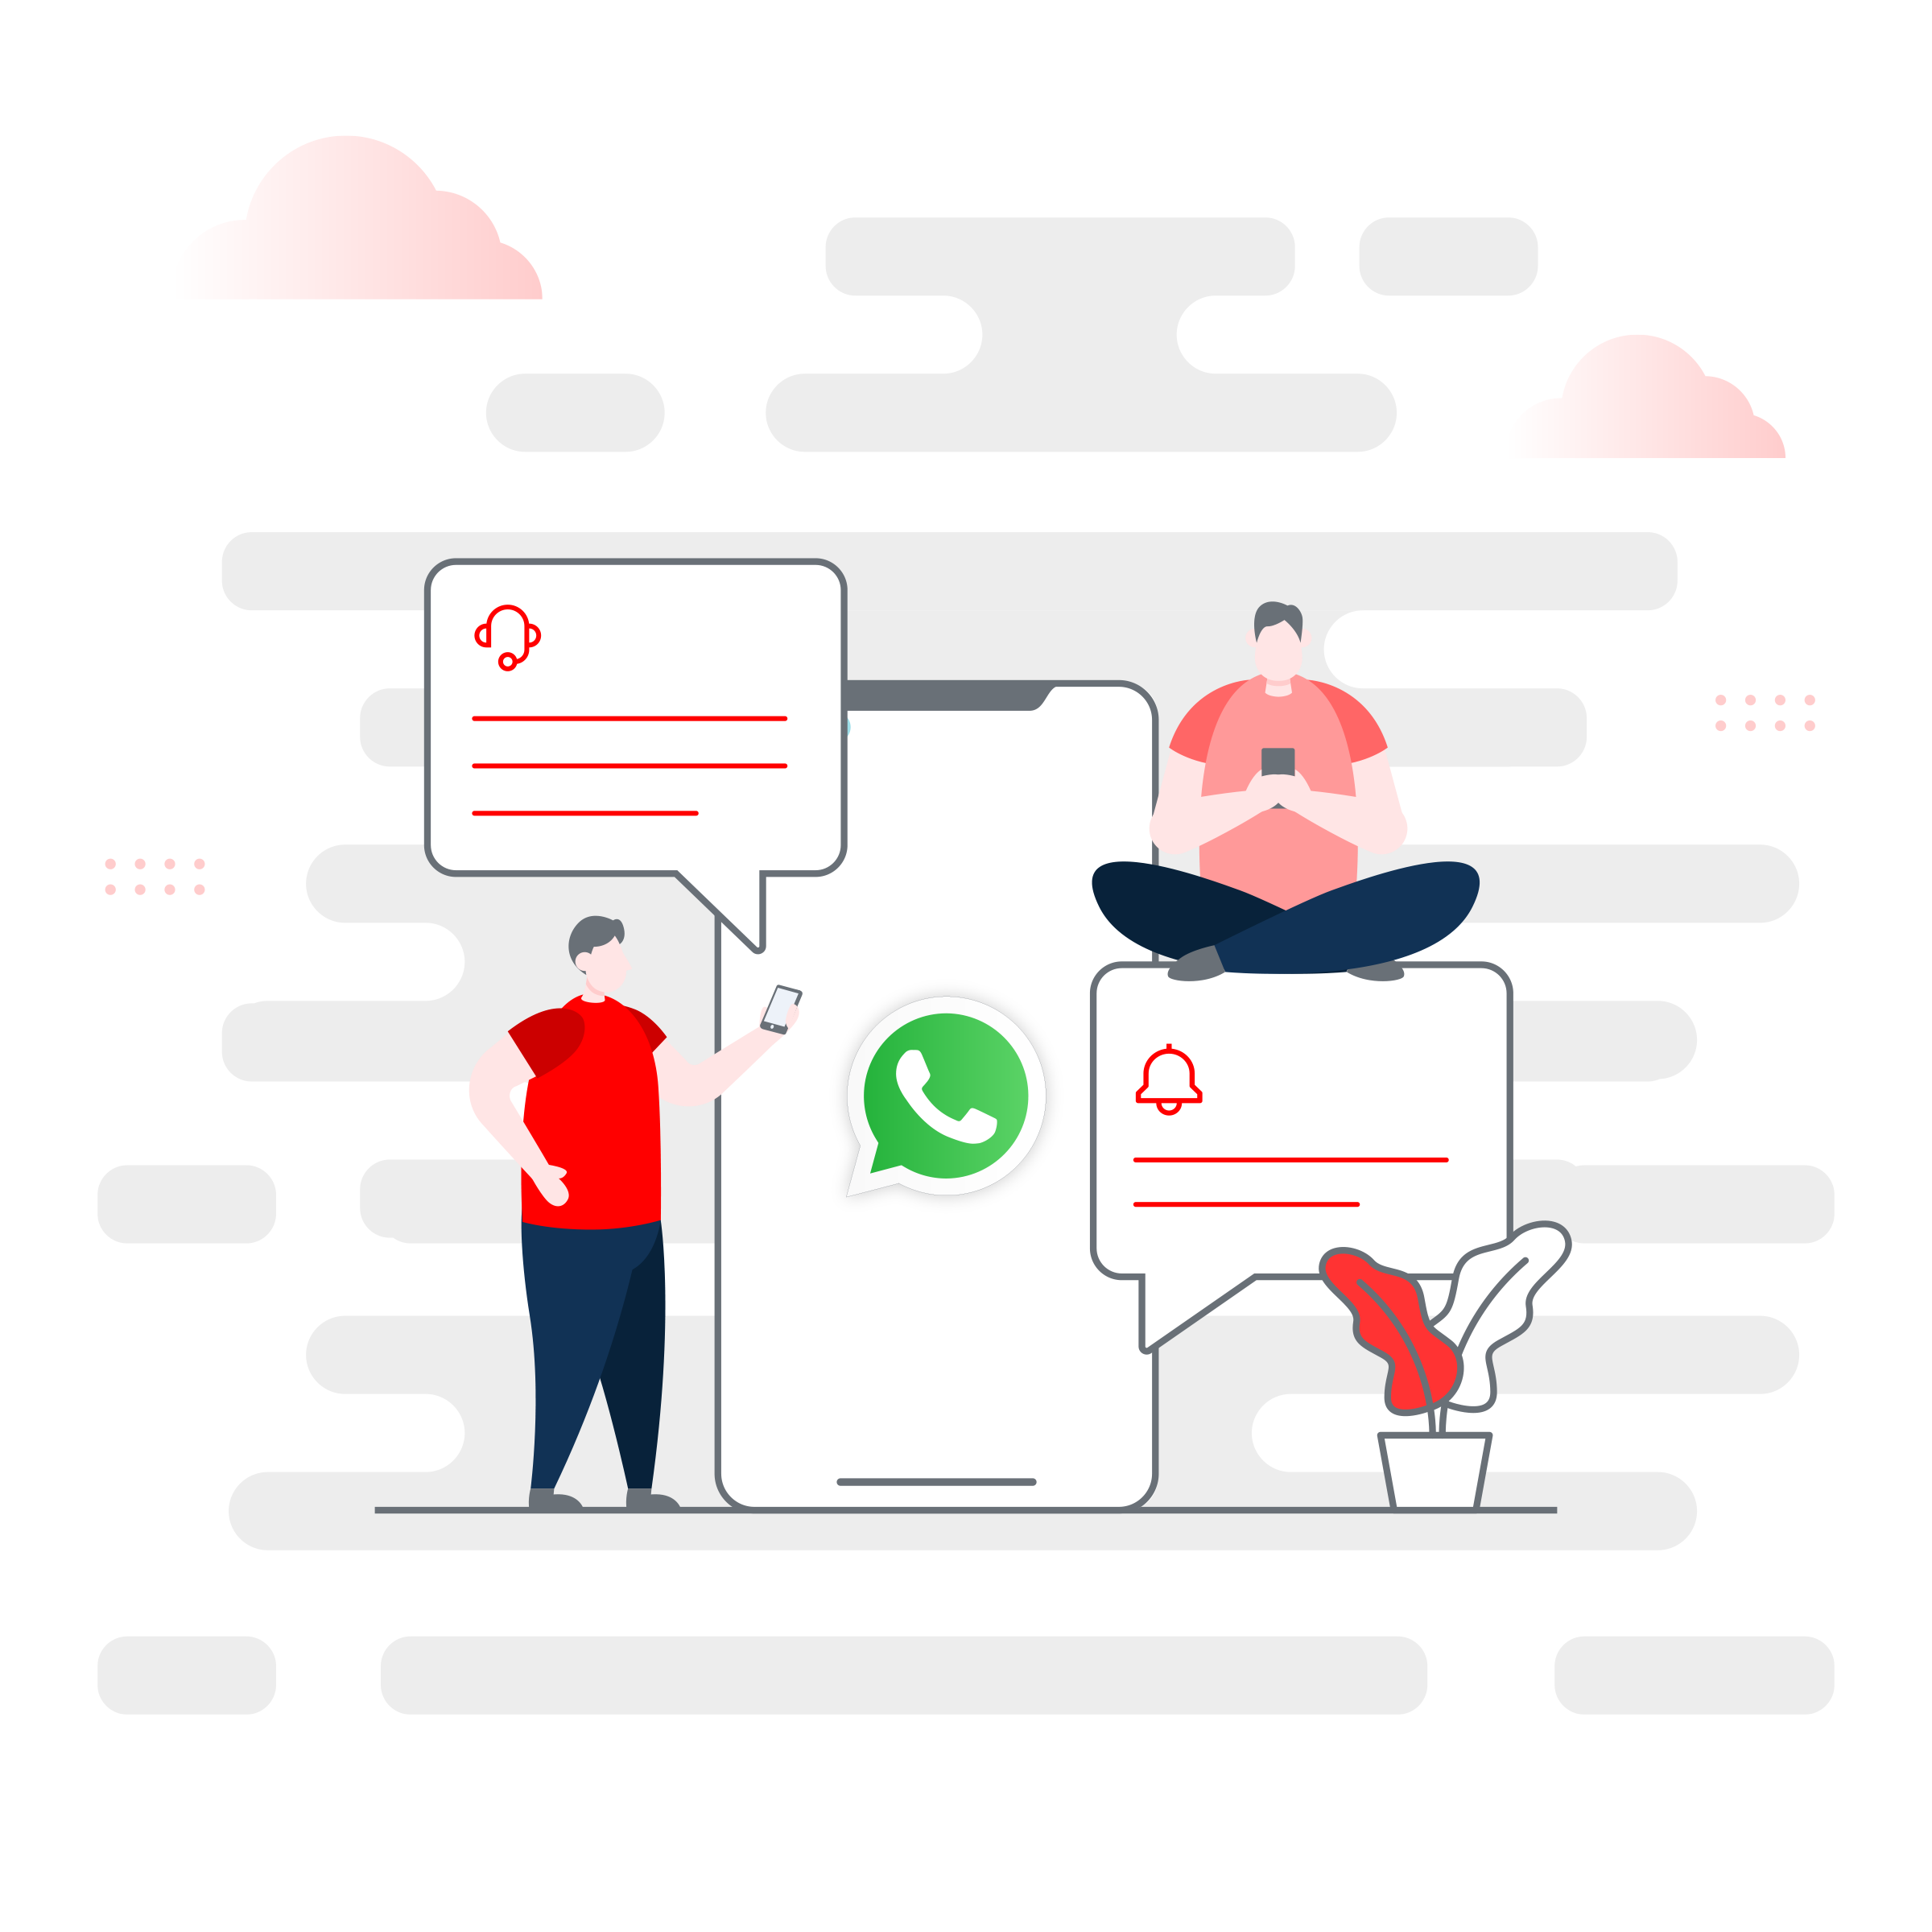 WhatsApp Business: Customer Care Messages vs. Template Messages